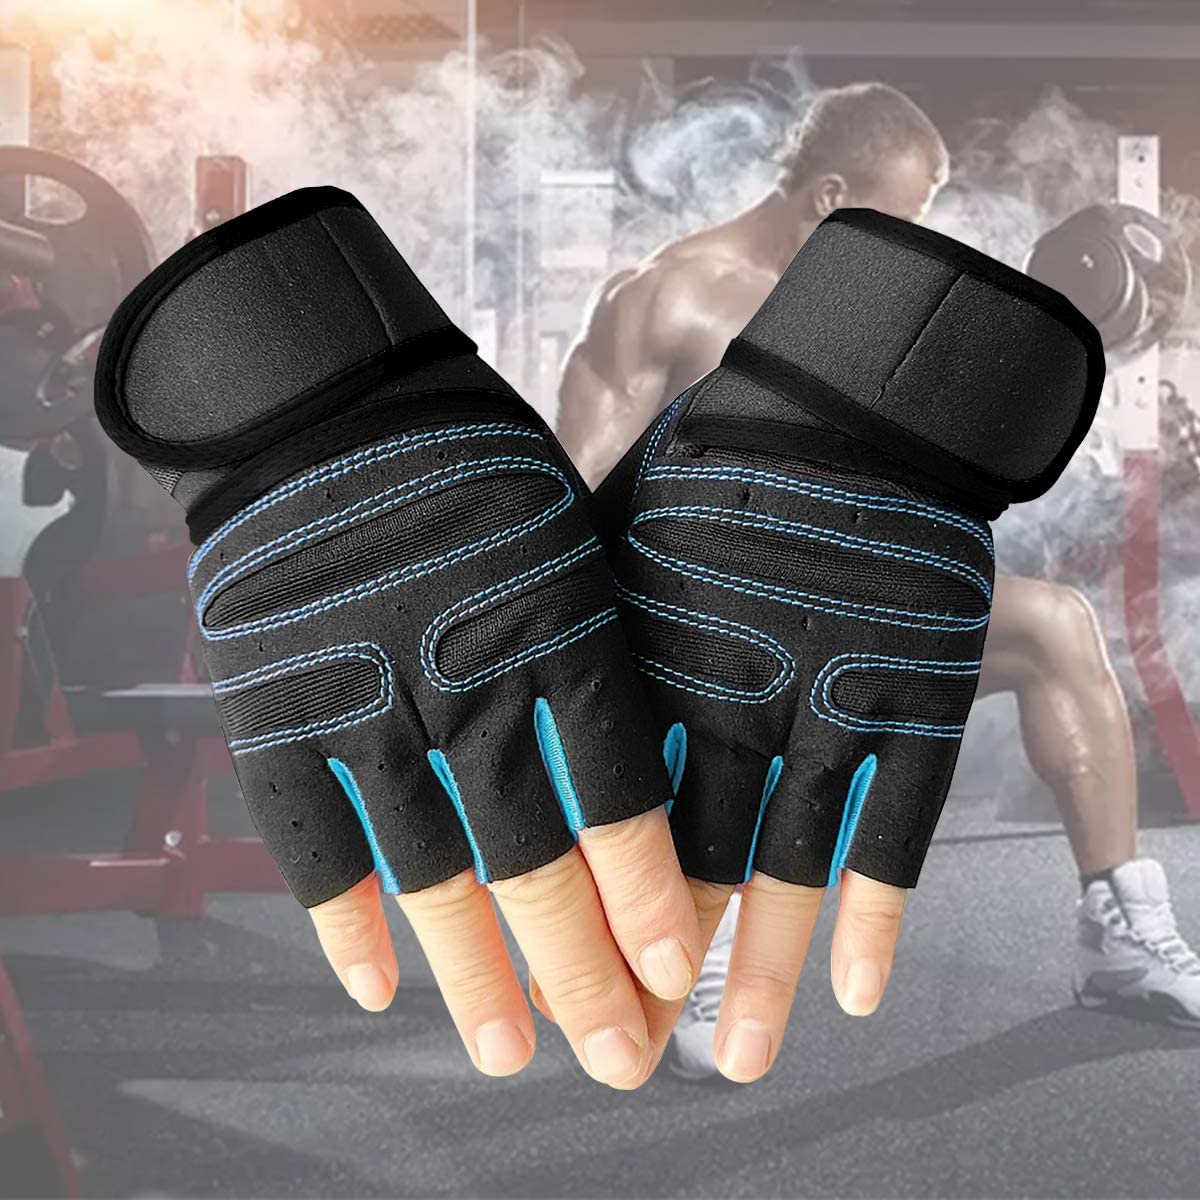 Crossfit and Strength Training Blue Perfect for Cycling Fitness LQRLY Training Gloves Breathable Weight Lifting Gloves with Wrist Support Anti Slip Gym Gloves